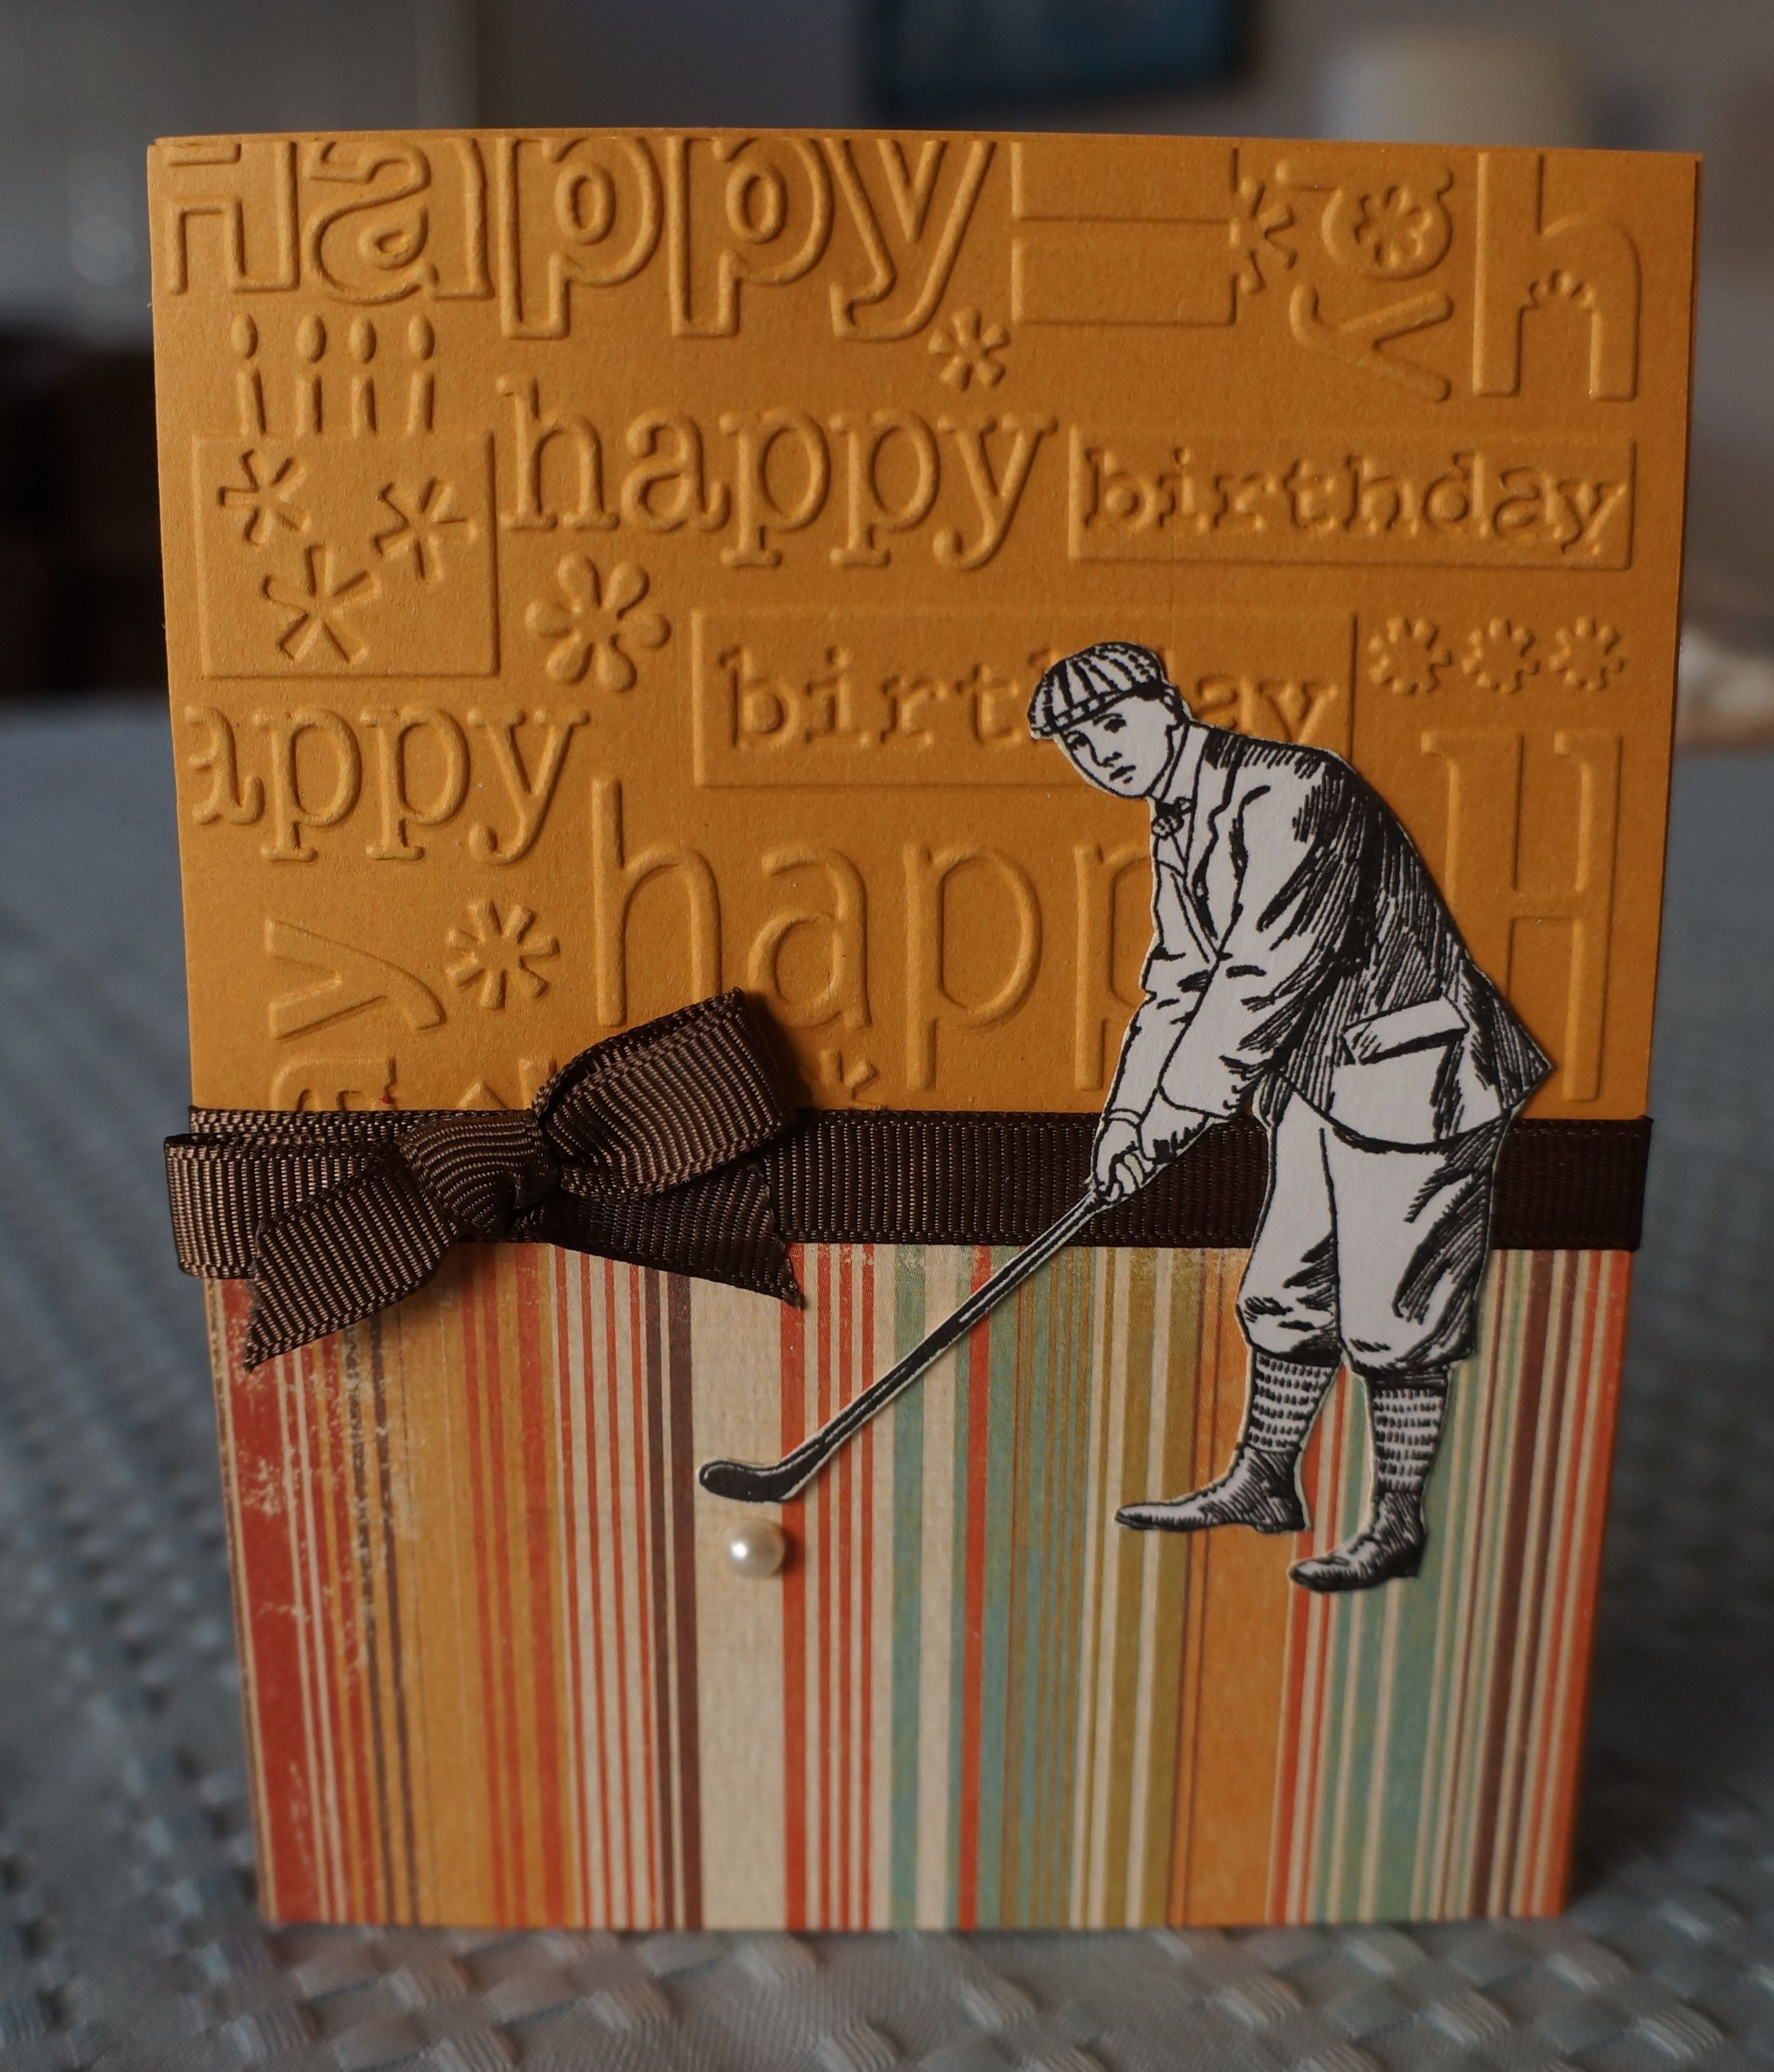 Pin By Sandi Farrell On Sandi Farrell S Cards Themed Cards Golf Birthday Cards Masculine Cards